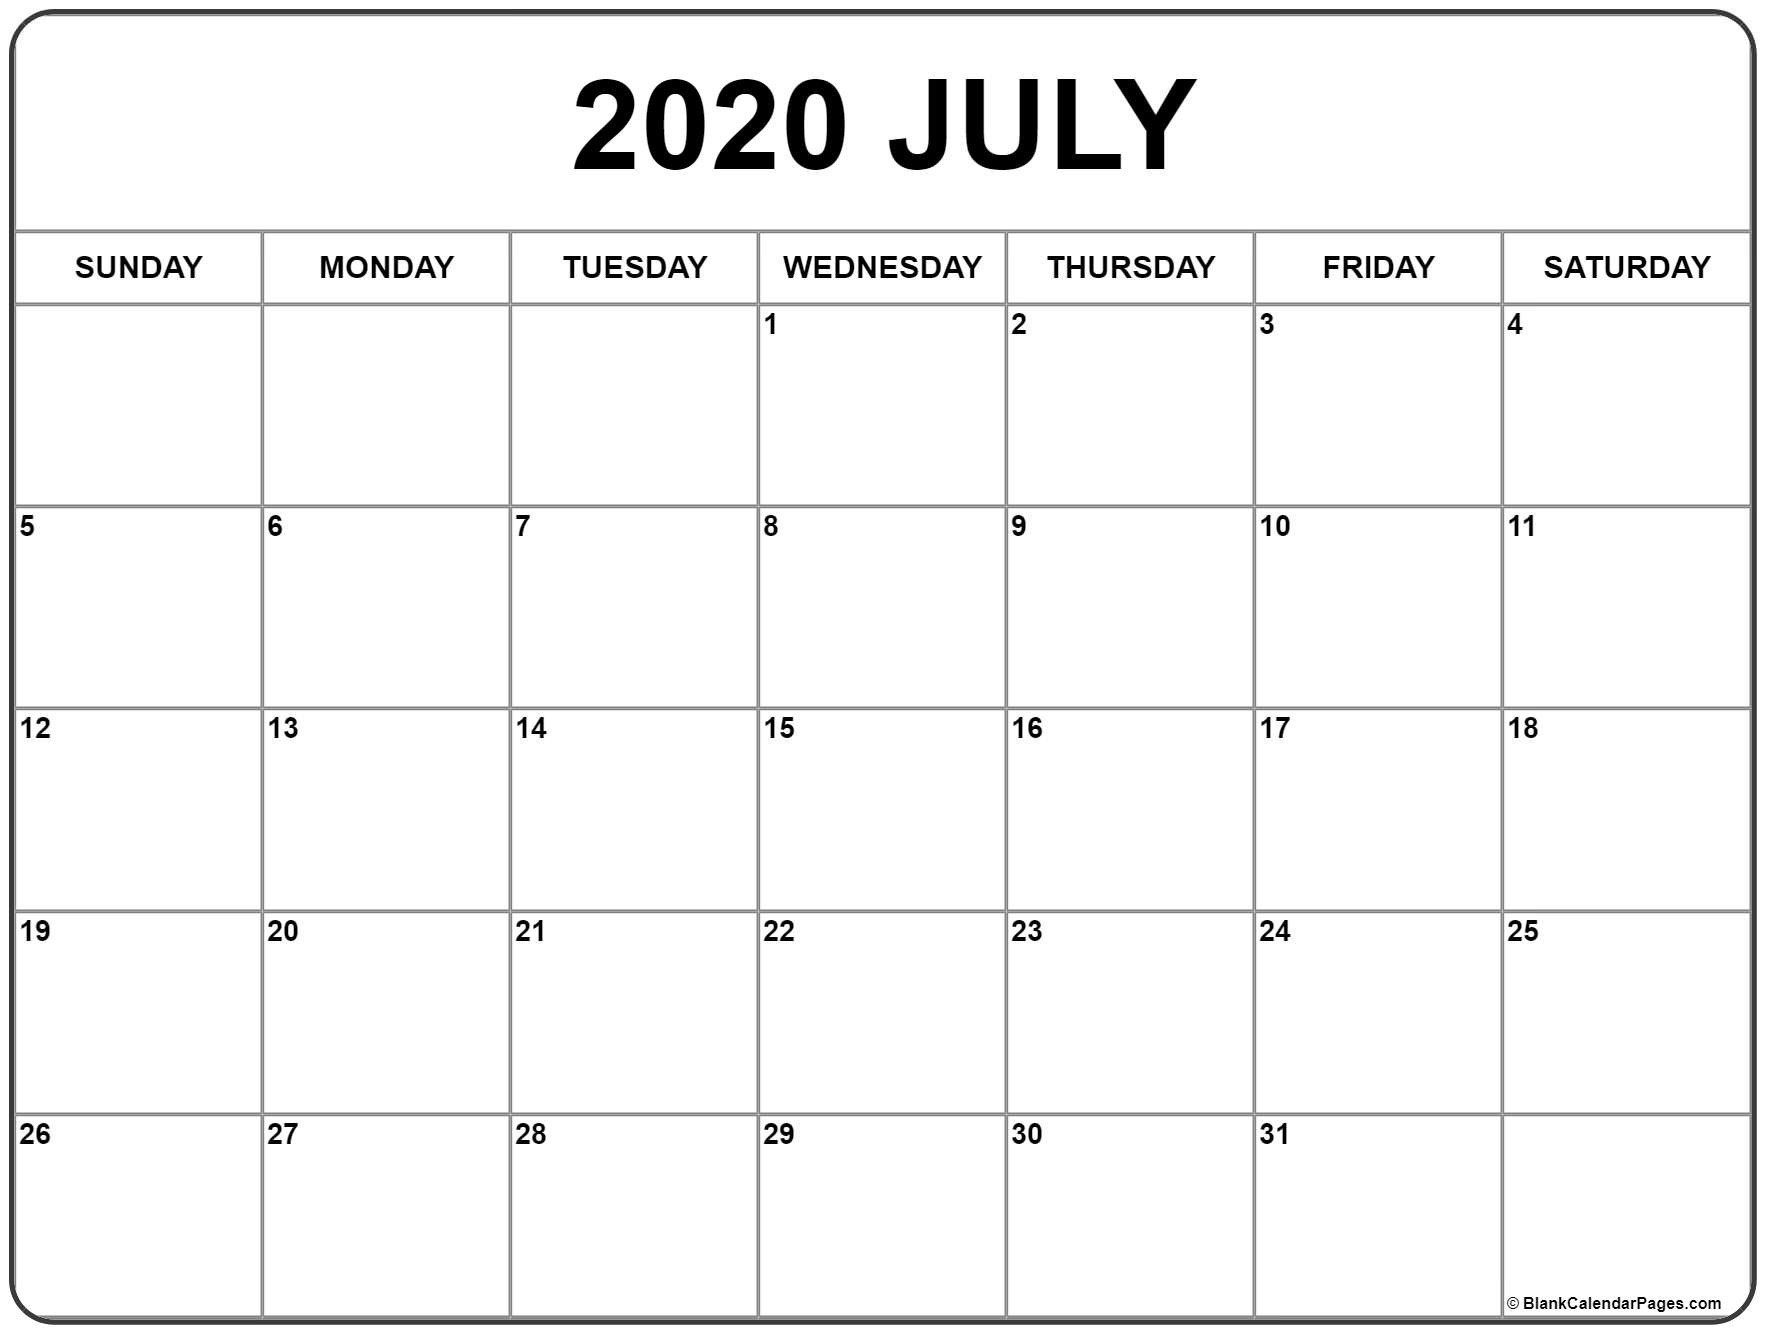 July 2020 Calendar | Free Printable Monthly Calendars-Summer Calendar Blank 2020